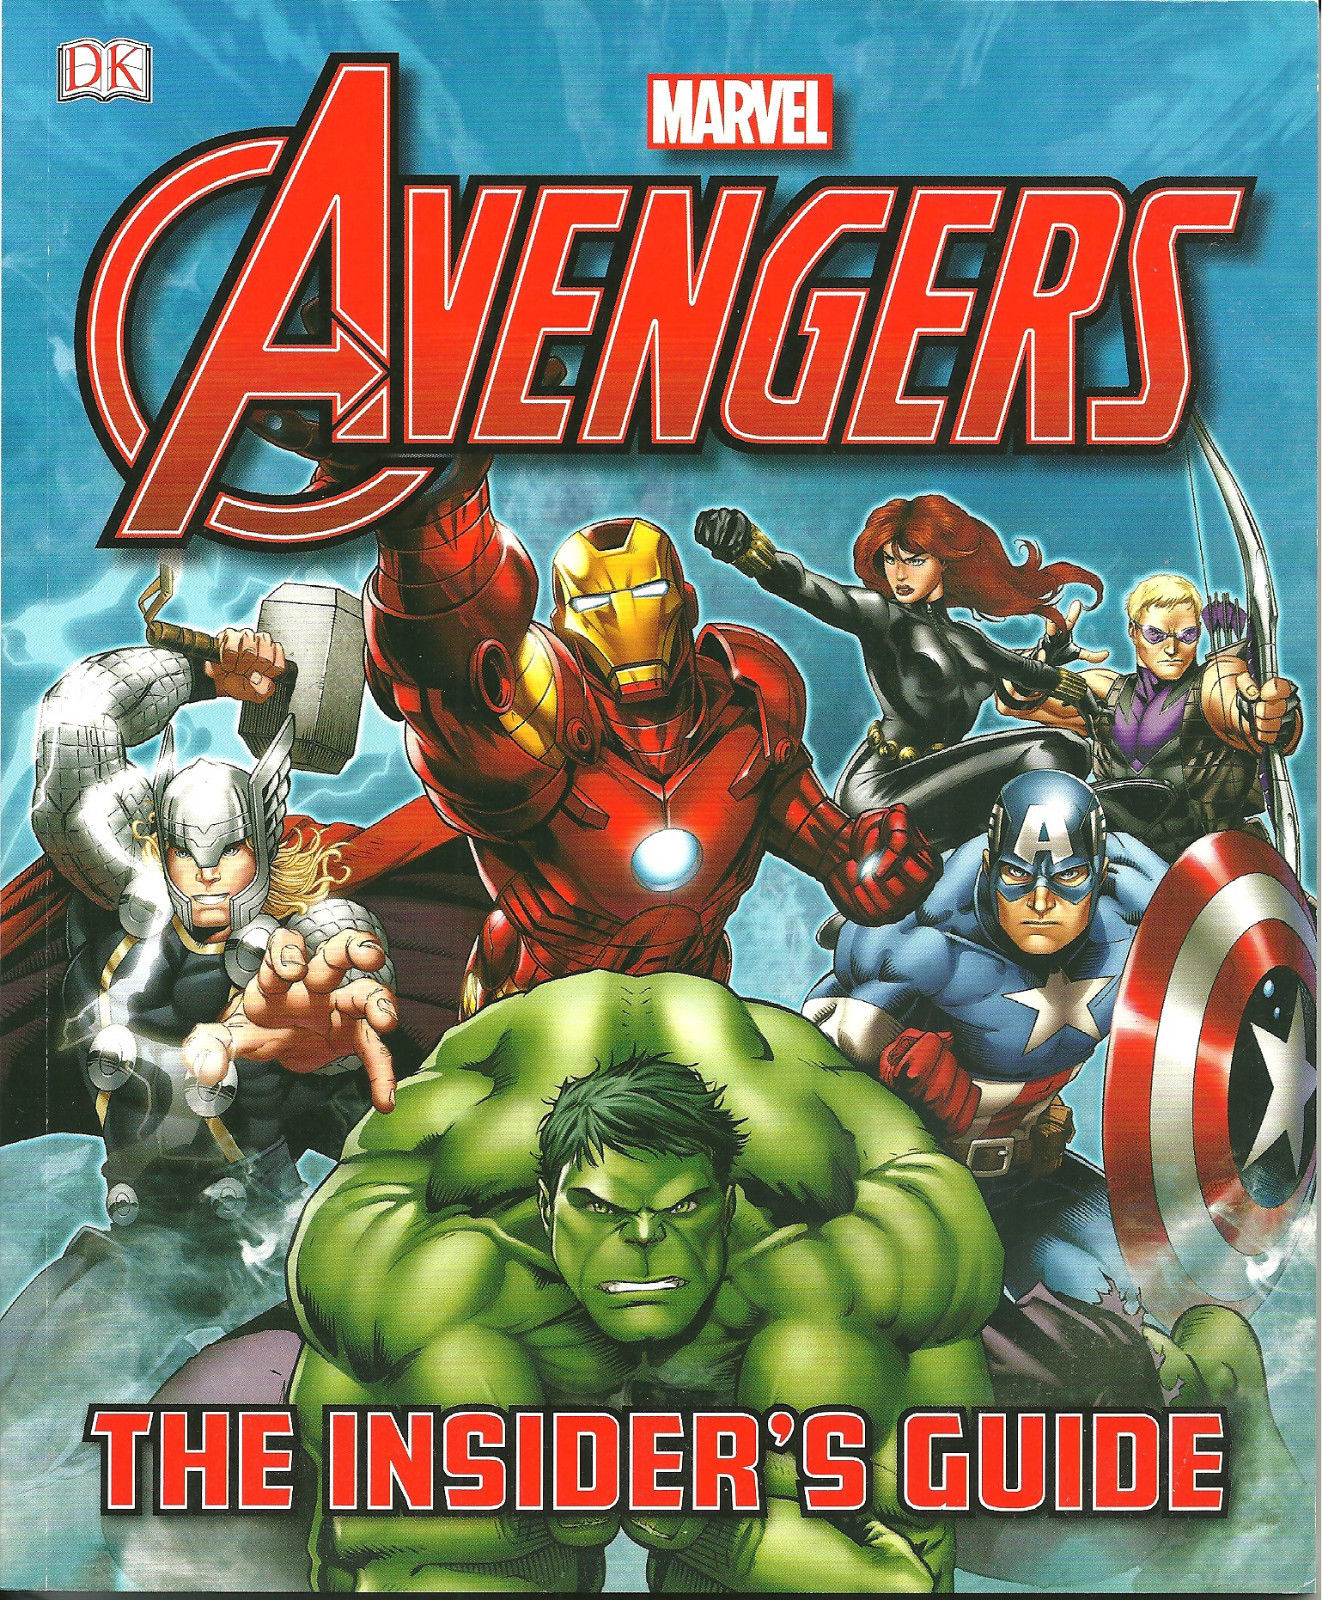 Avenger's : the insider's guide